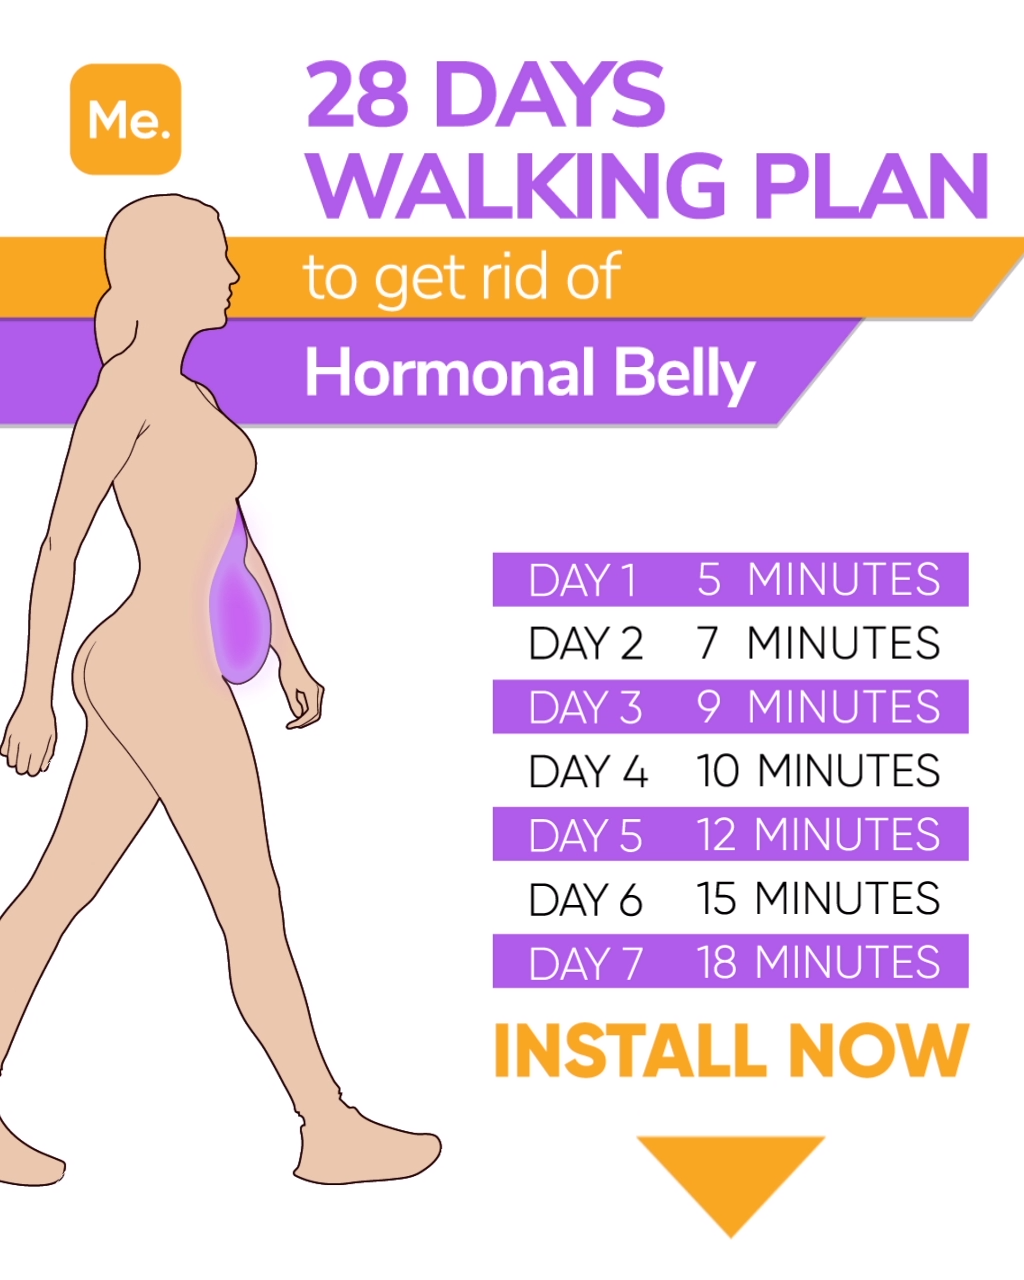 11-Day Walking Plan to Get Rid of Hormonal Belly [Video]  Hormonal belly,  Walking plan, Get rid of hormonal belly